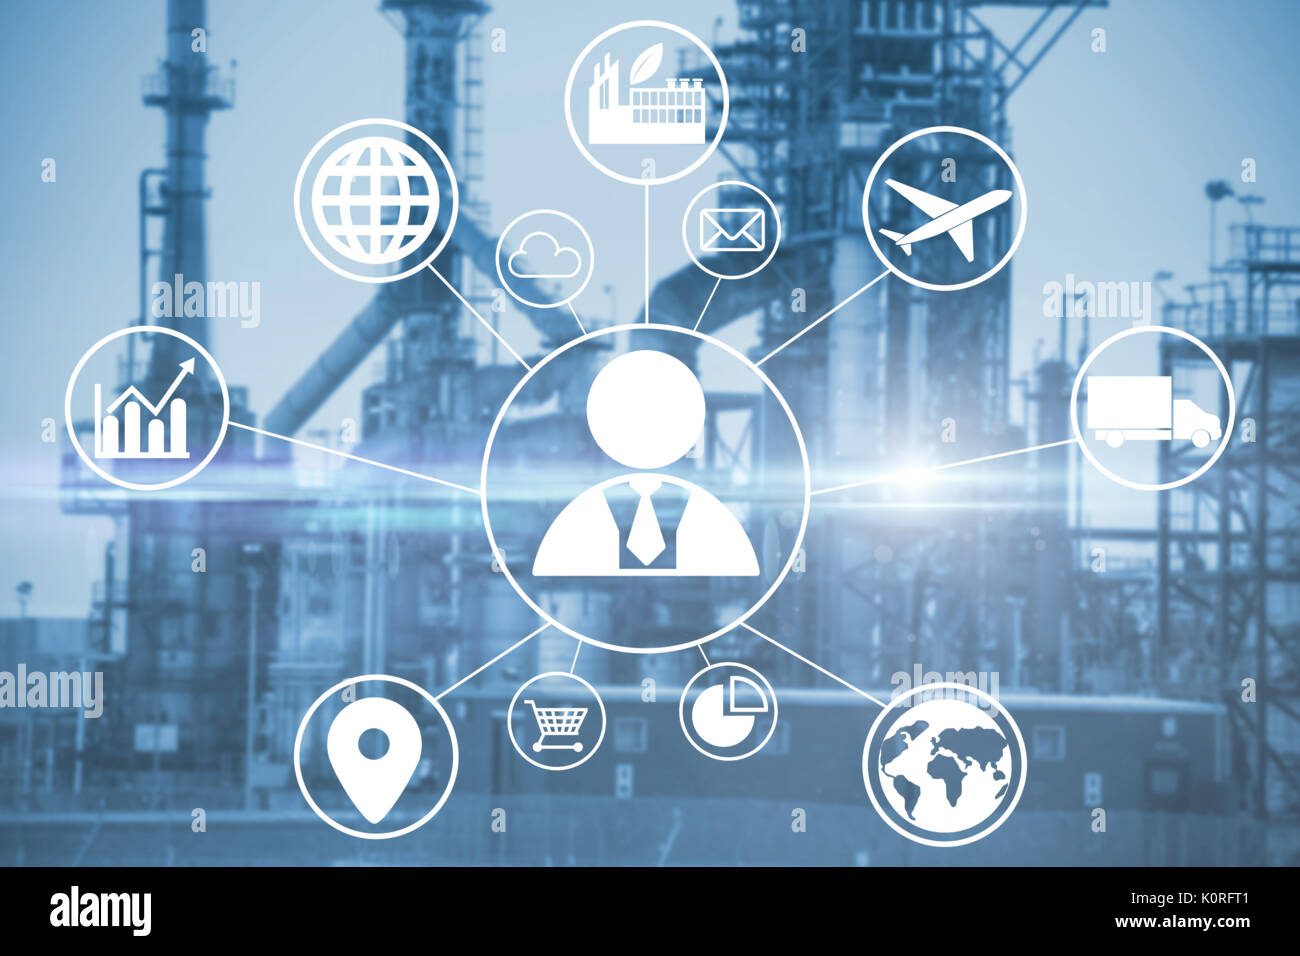 Composite image of human representation amidst various icons against image of factory - Stock Image